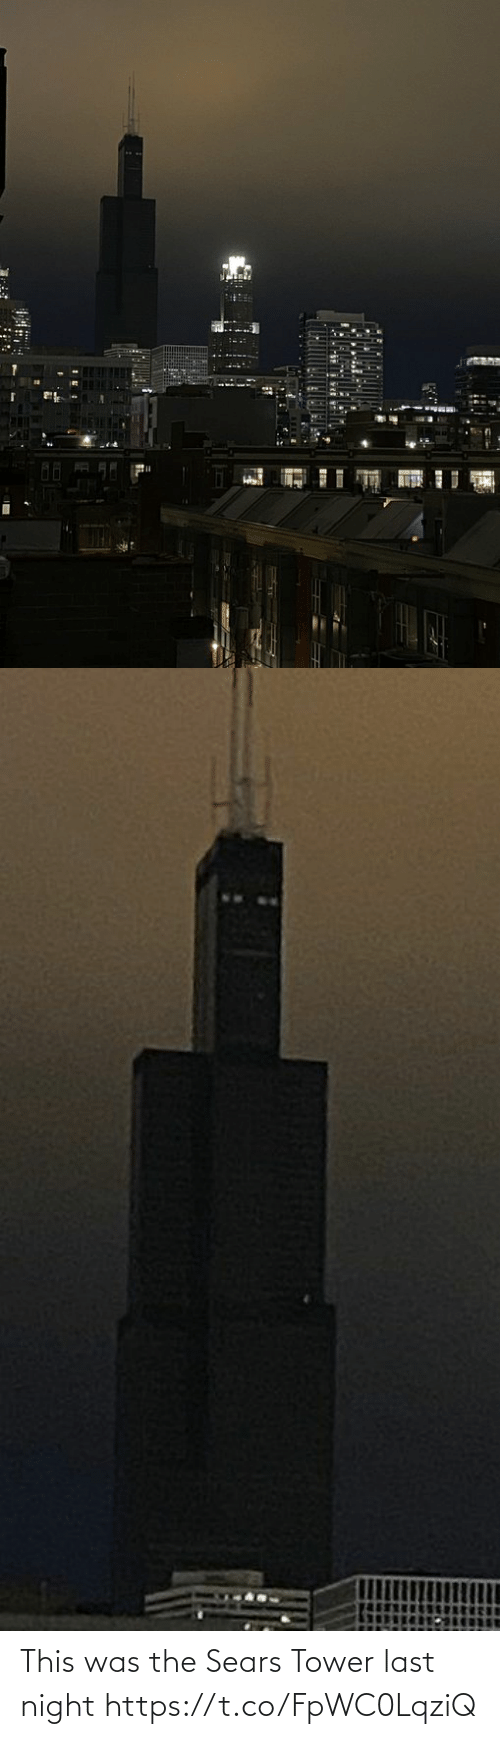 Faces-in-Things: This was the Sears Tower last night https://t.co/FpWC0LqziQ